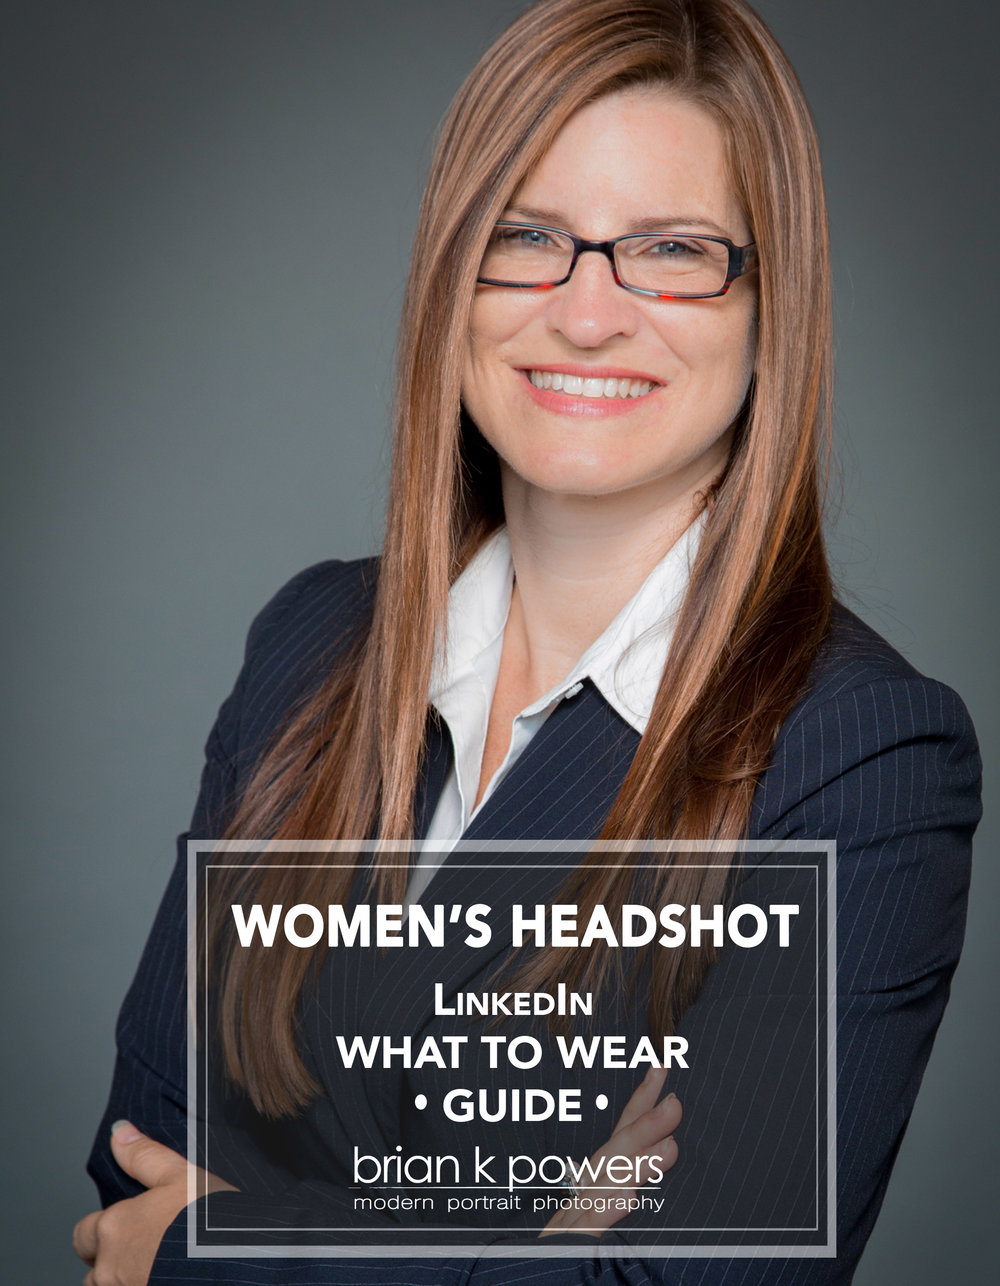 A business headshot is an important part of your brand. Take a look at this  LinkedIn  guide for what to wear for Women's Business Headshots.